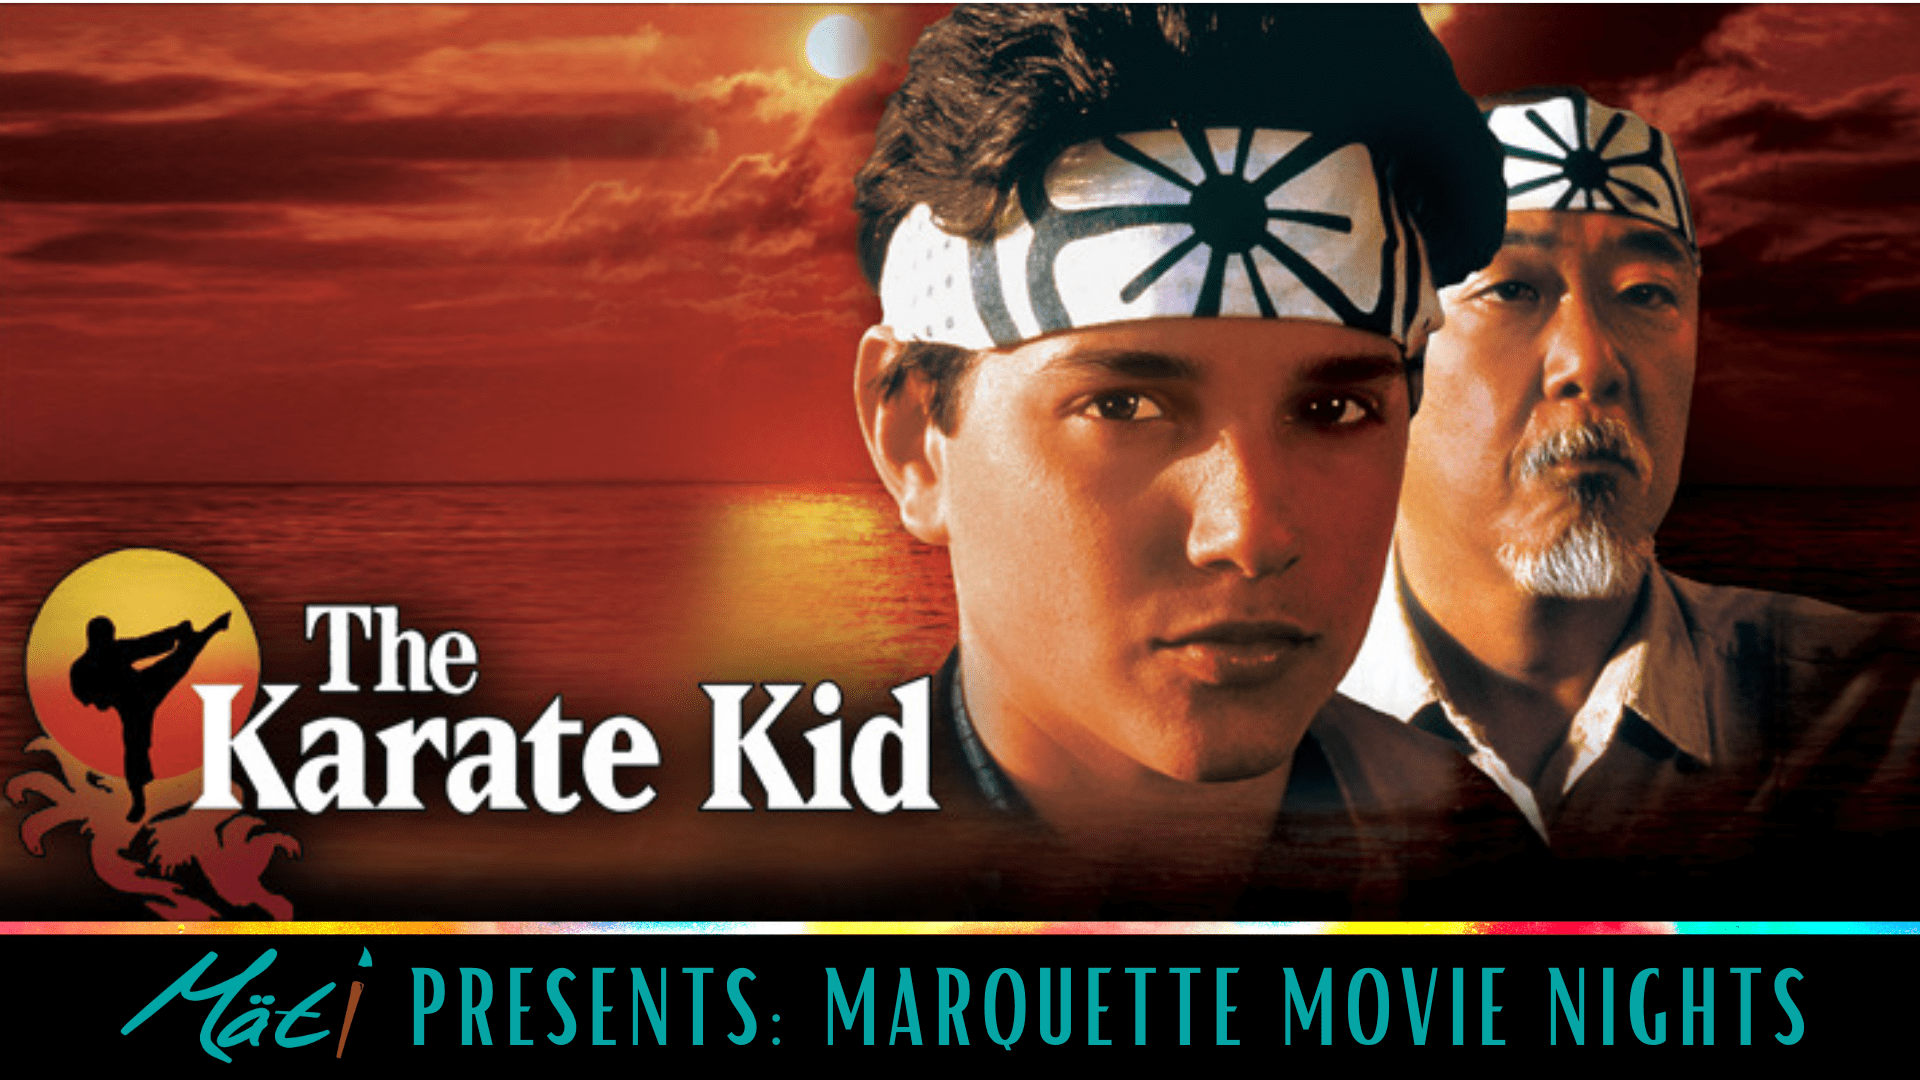 MÄTI Presents: Marquette Movie Nights – The Karate Kid